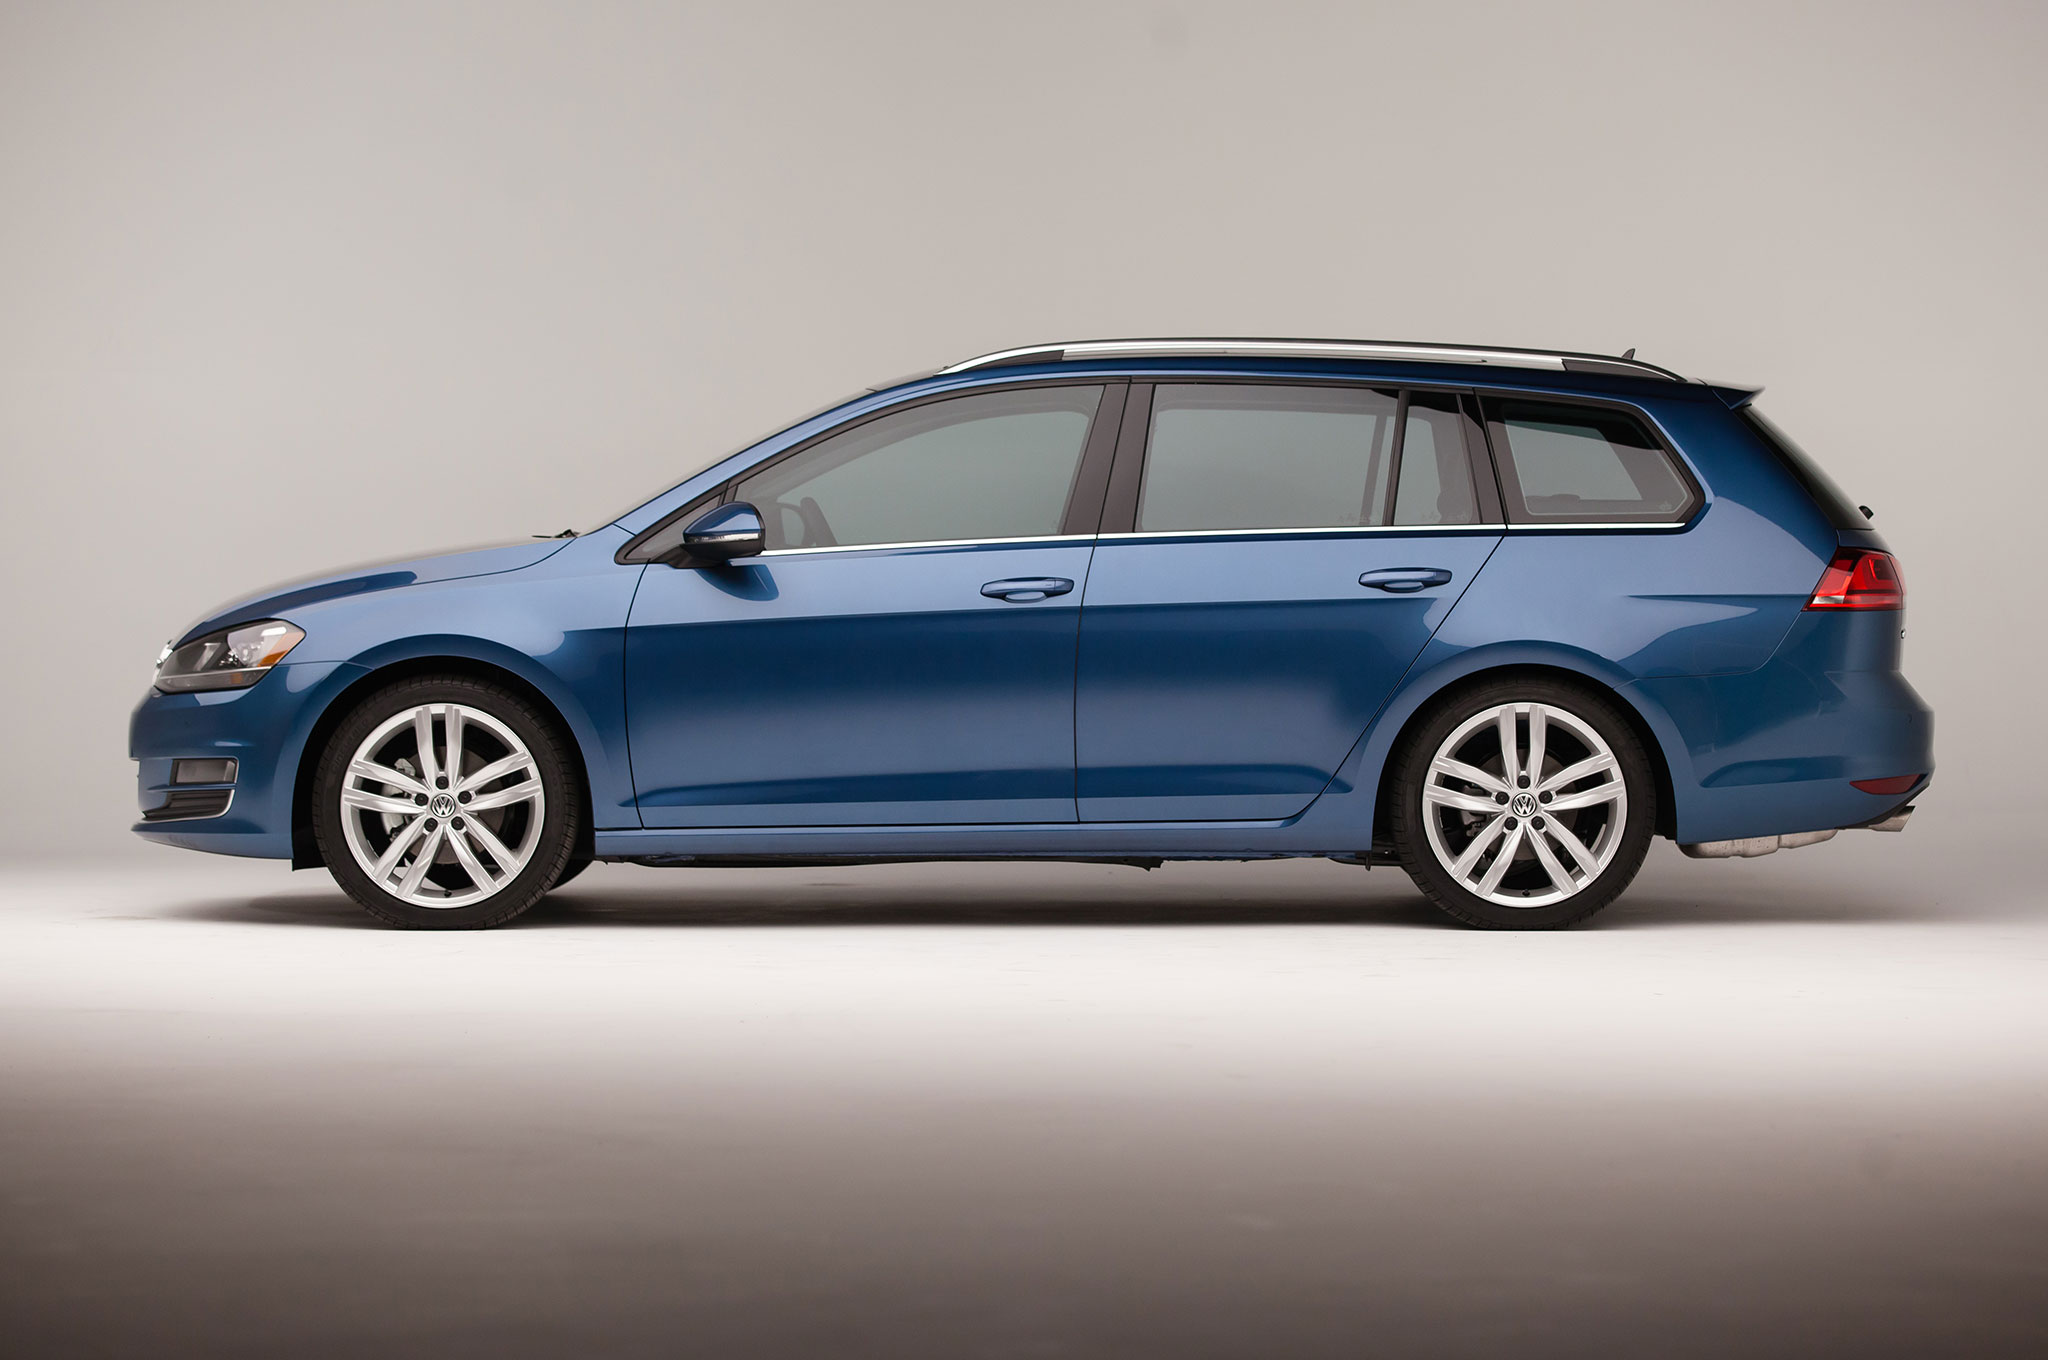 Coole Sportwagen 2015 Volkswagen Golf Sportwagen Priced From 22 215